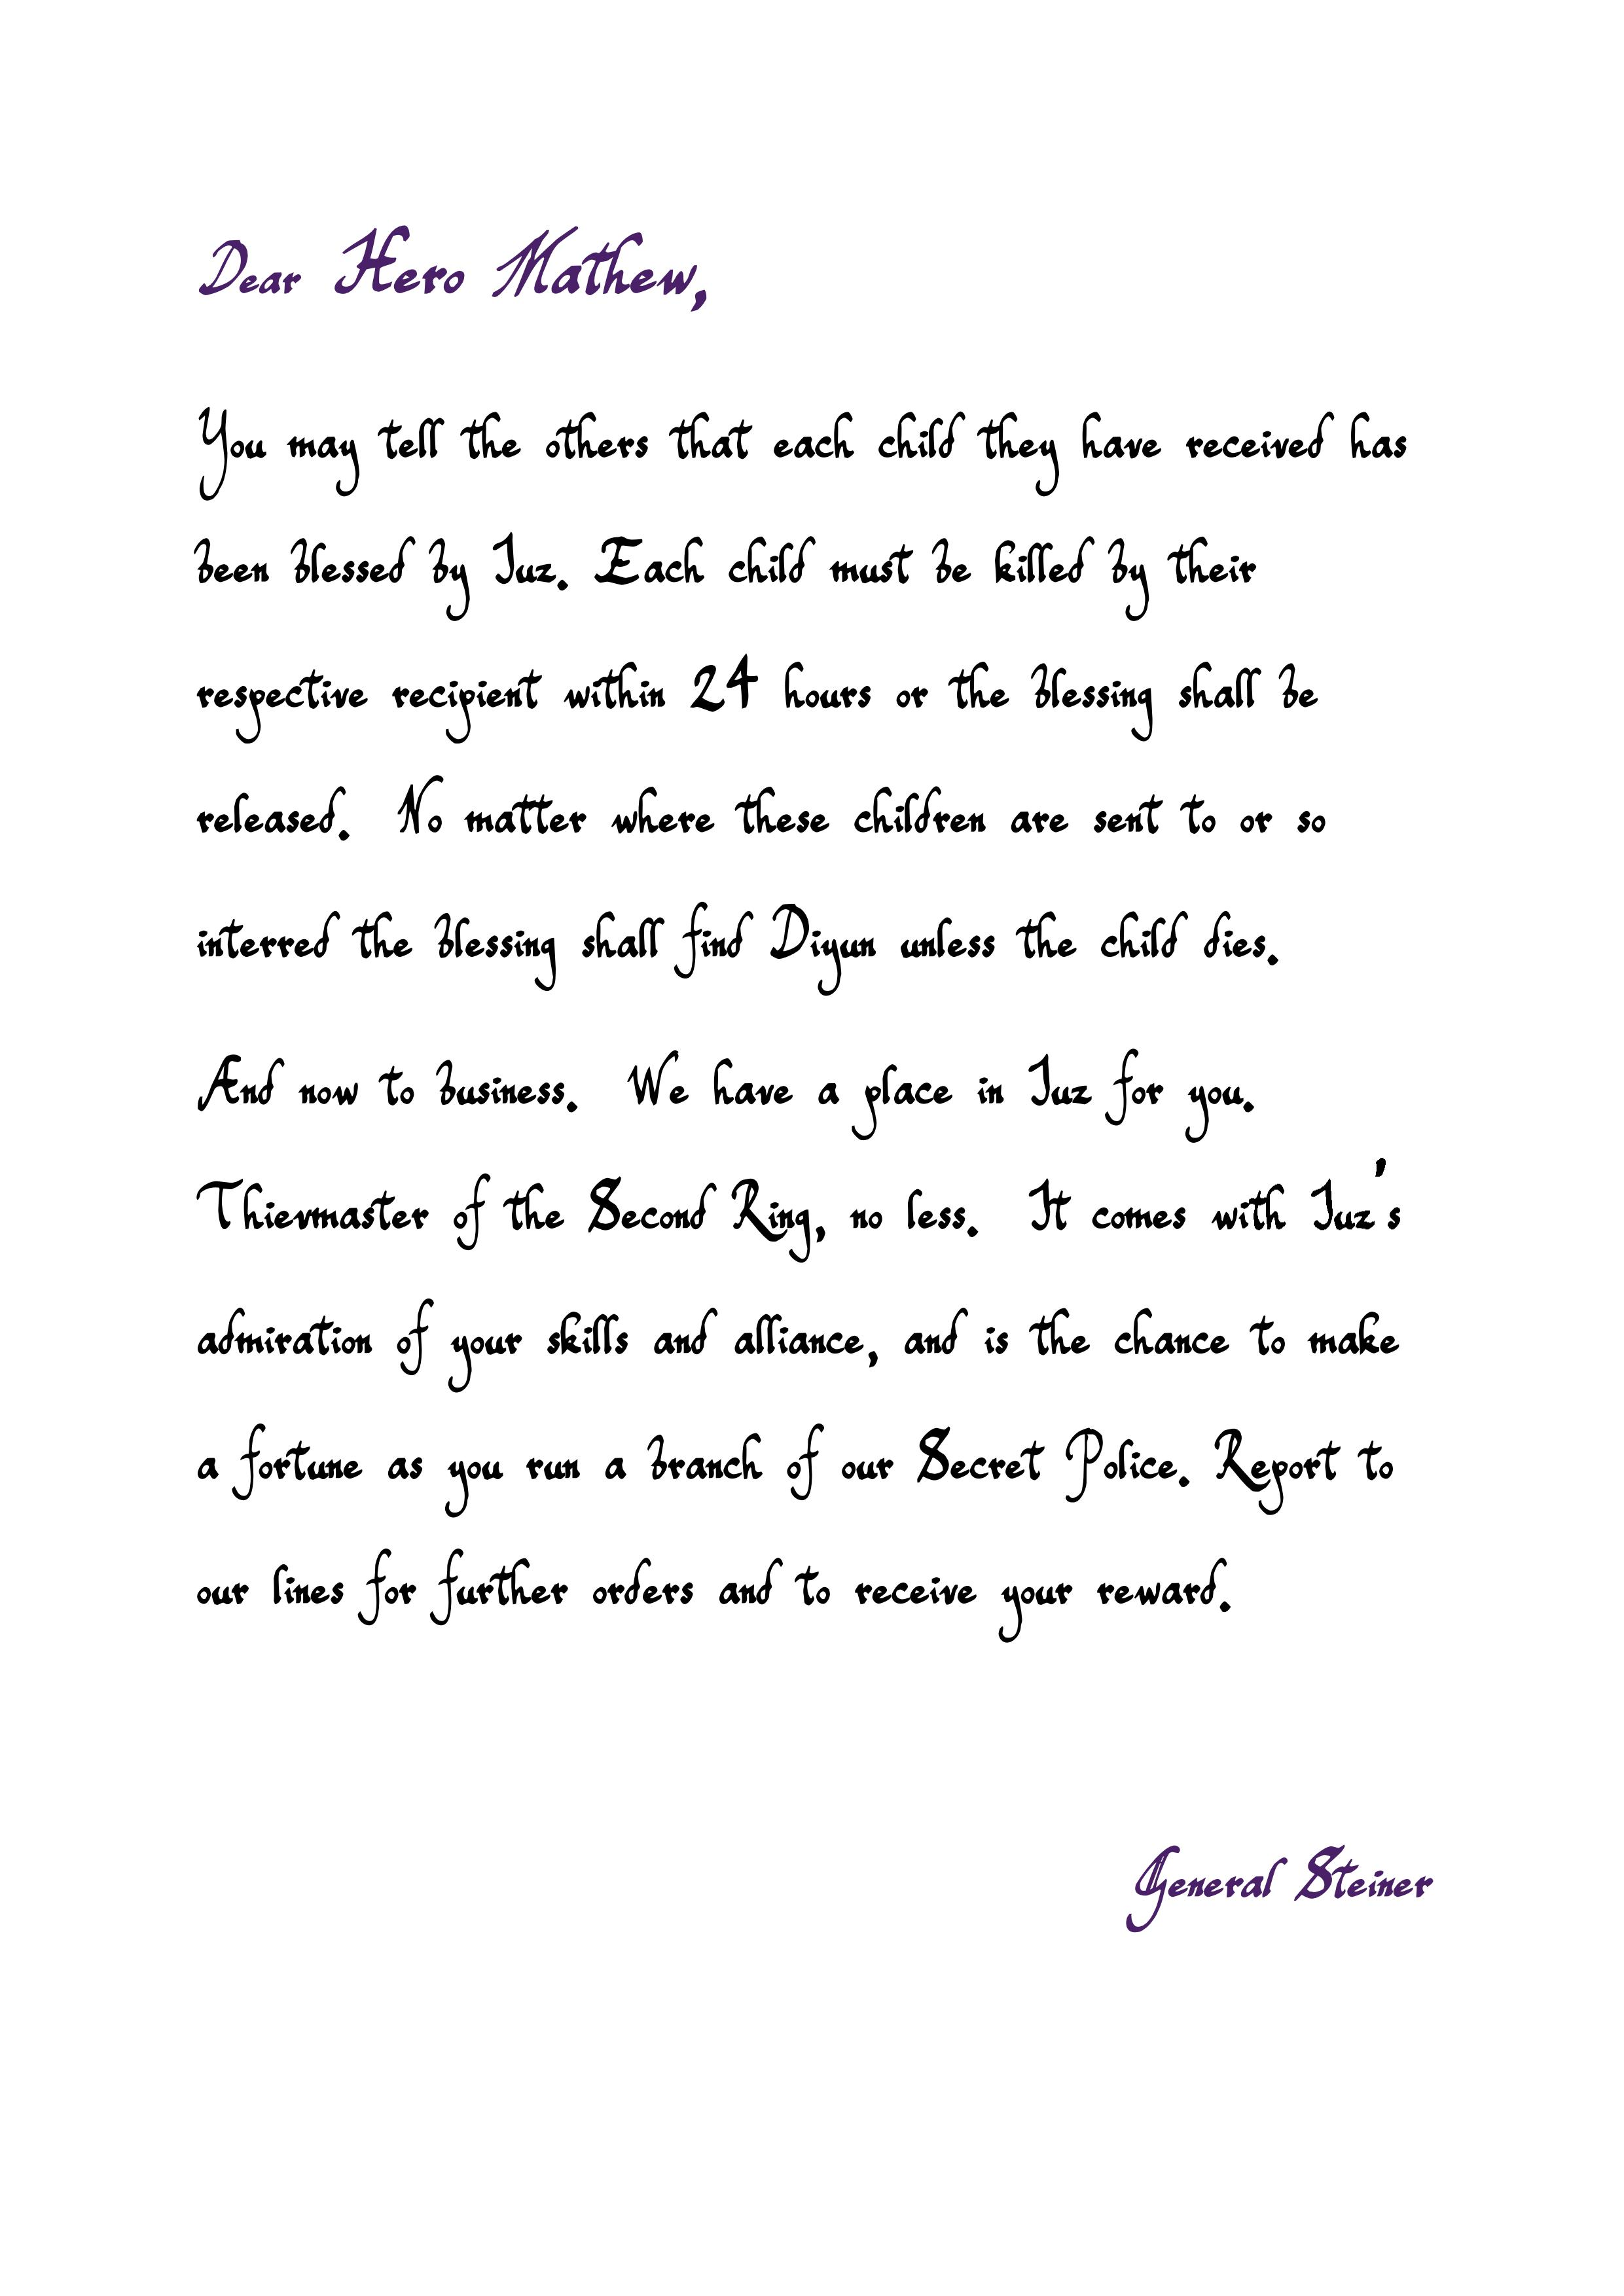 letters_from_steiner_01.jpg